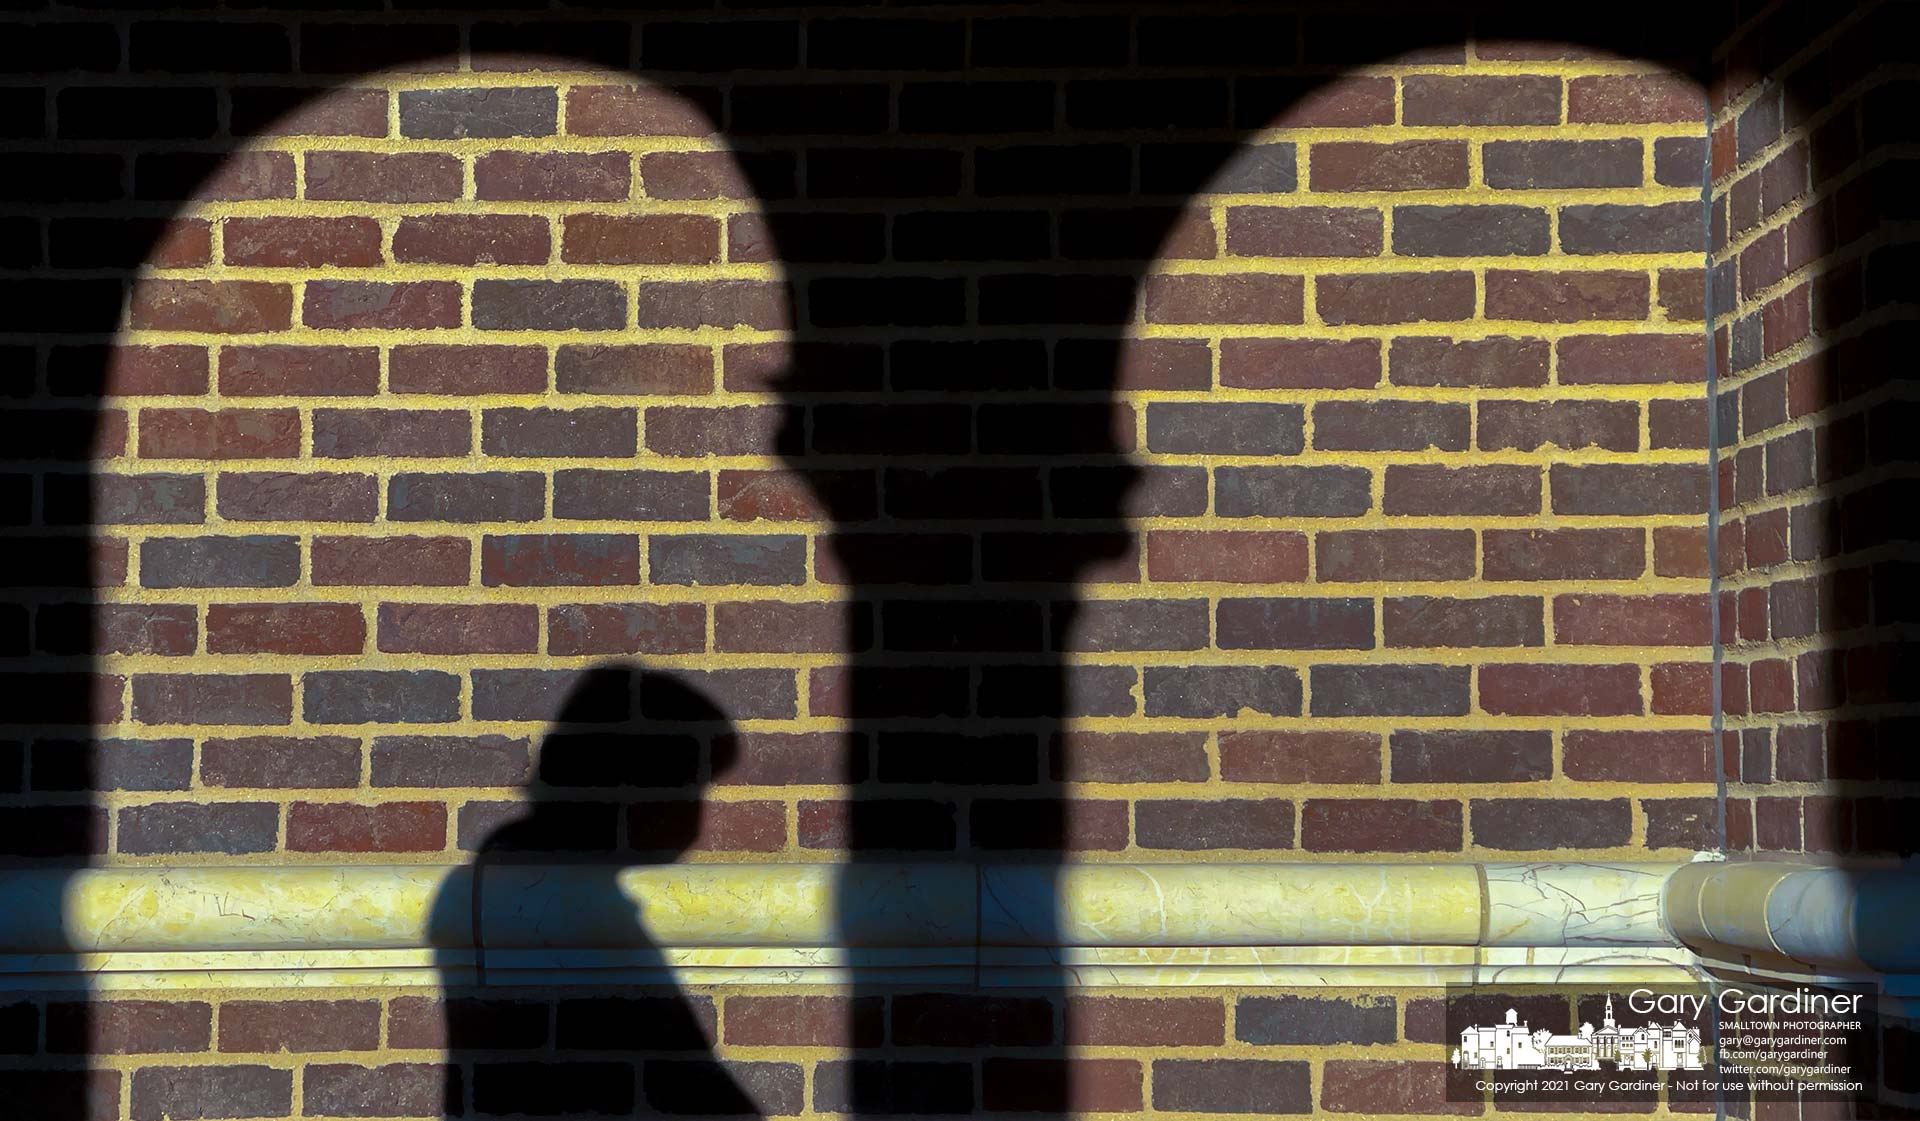 A parishioner's shadow settles on a wall leading into St. Paul the Apostle Catholic Church. My Final Photo for March 7, 2021.